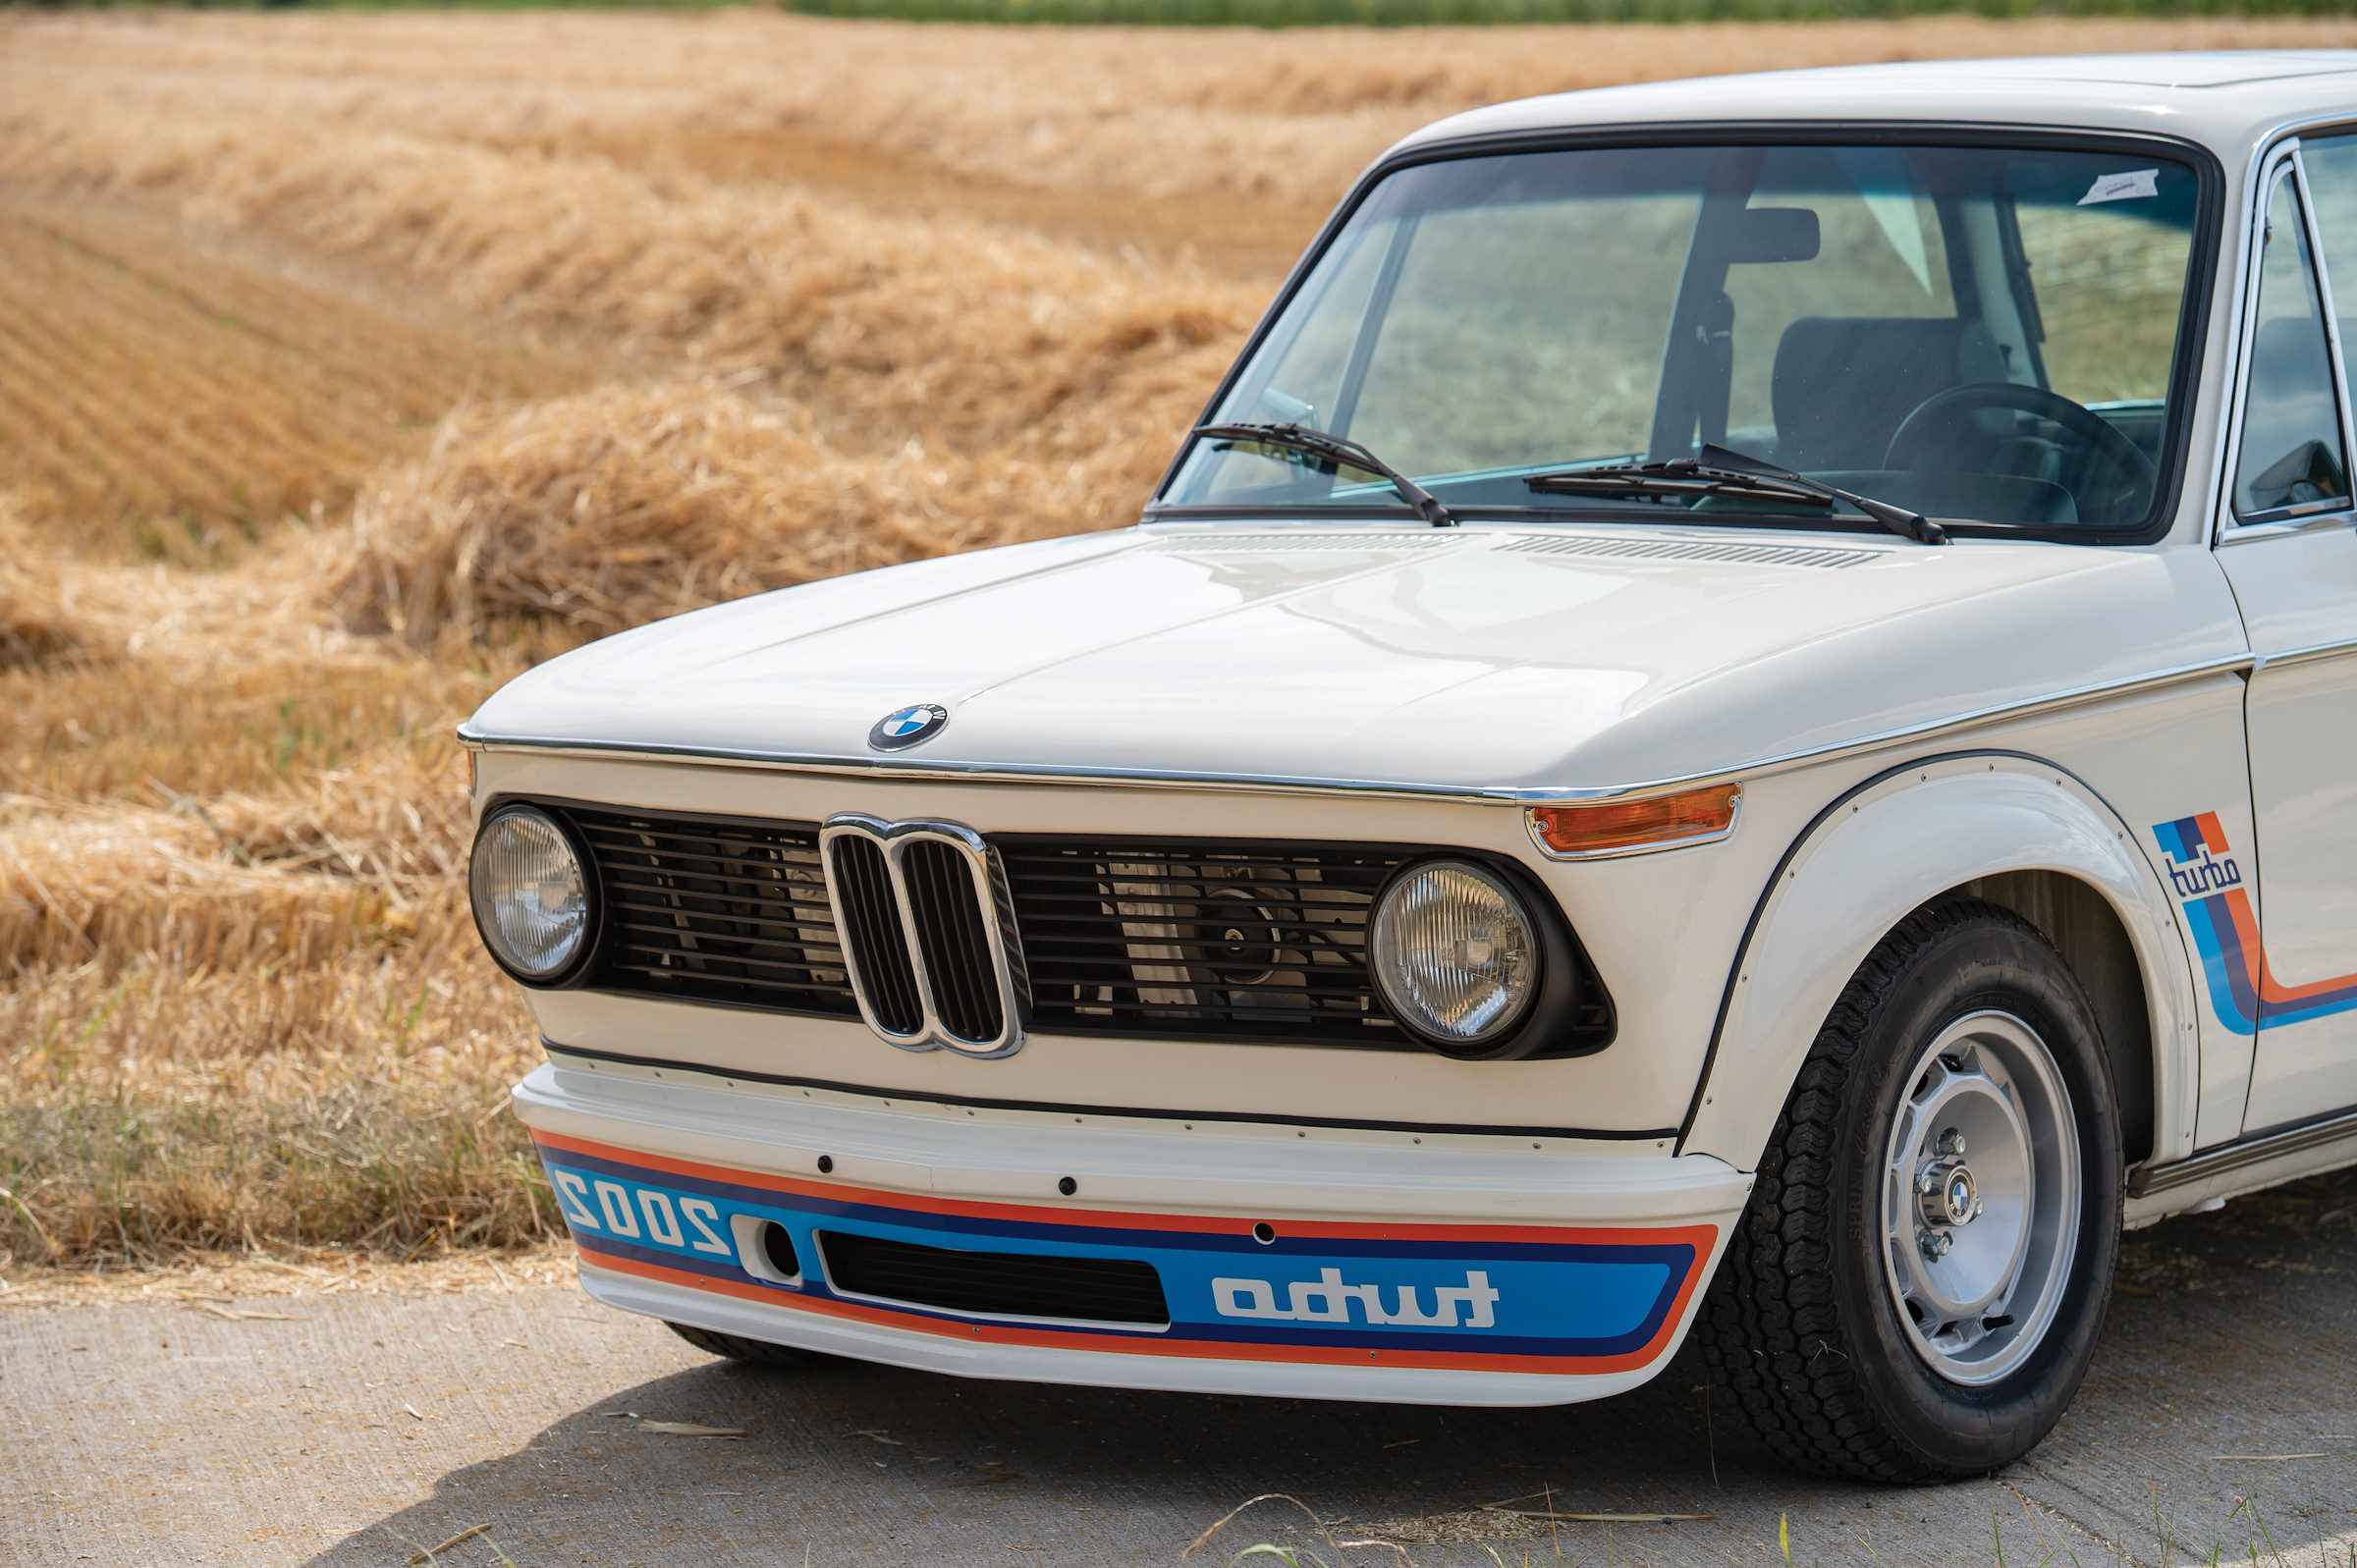 The First Turbocharged Production Bmw 1974 Bmw 2002 Turbo